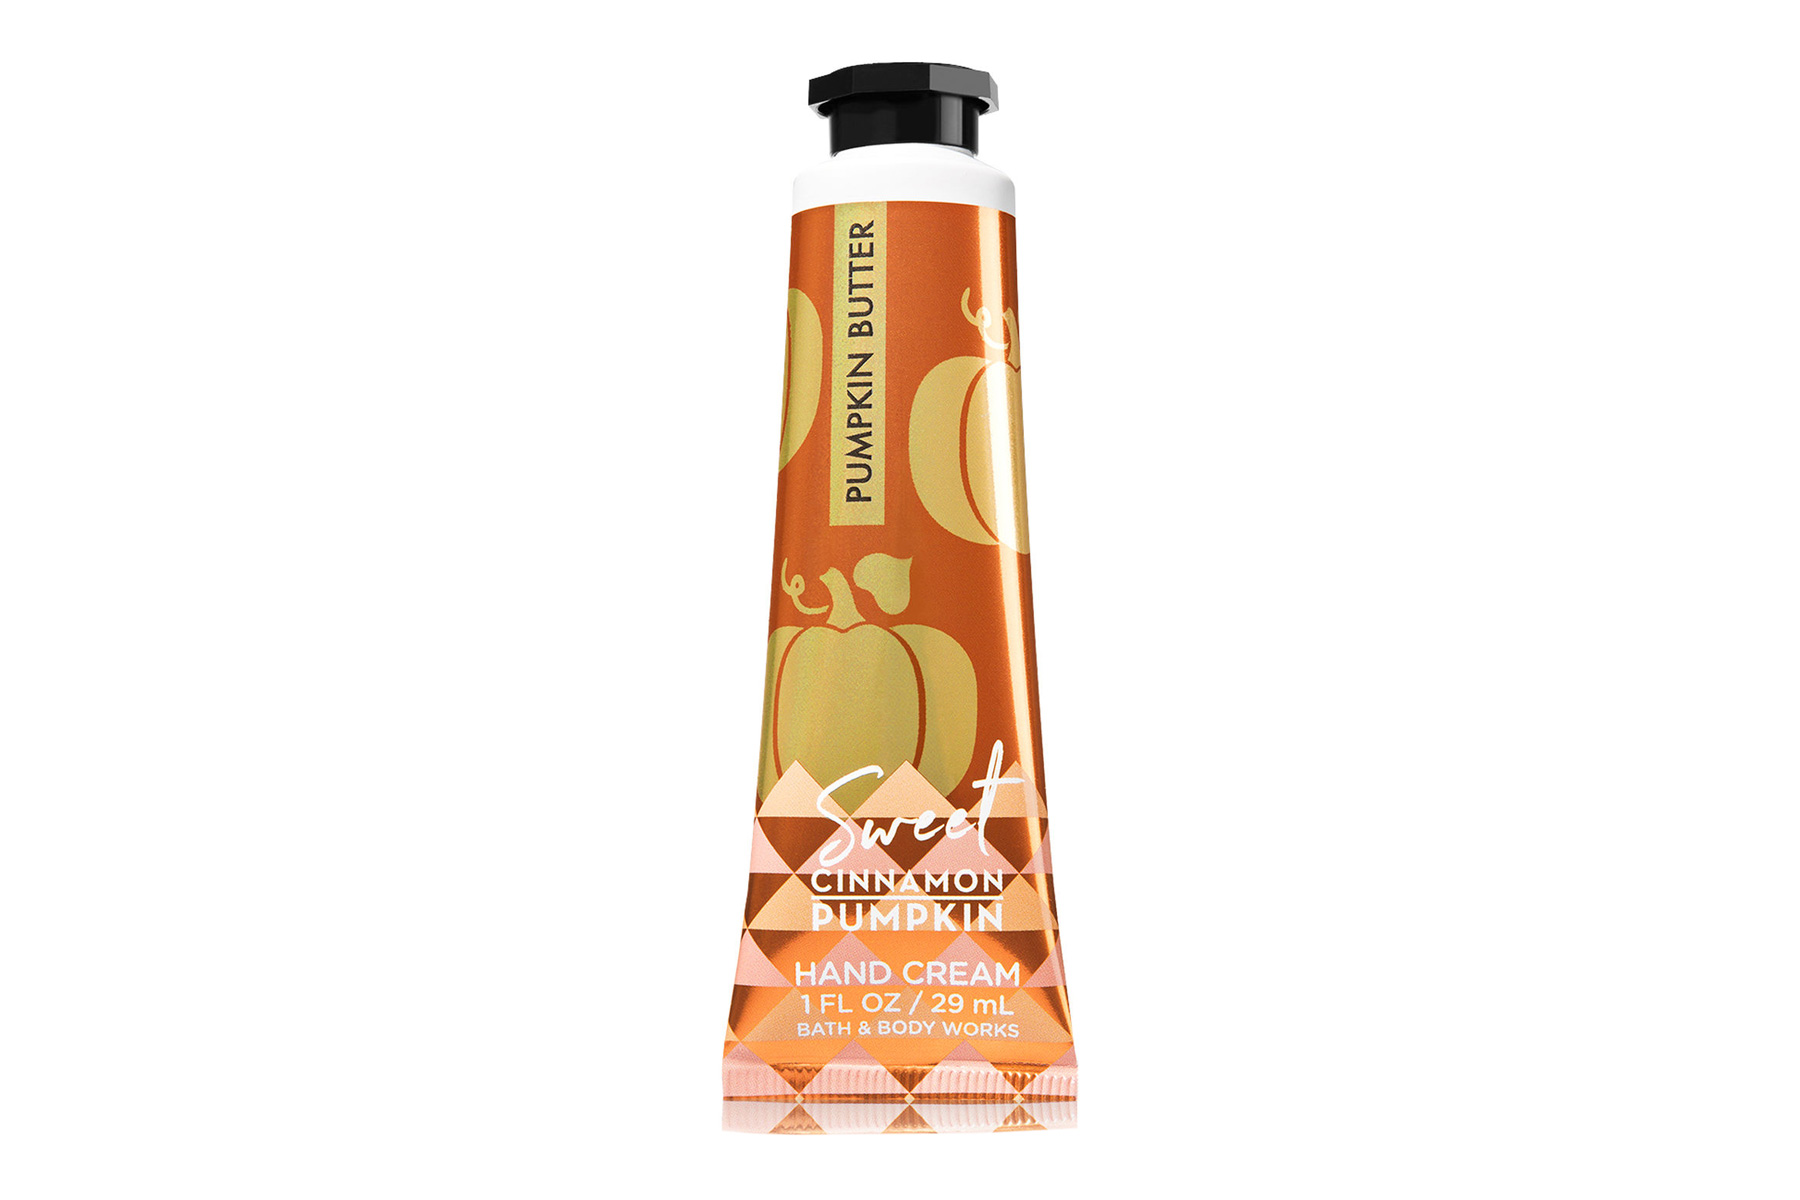 Bath & Body Works Sweet Cinnamon Pumpkin Hand Cream